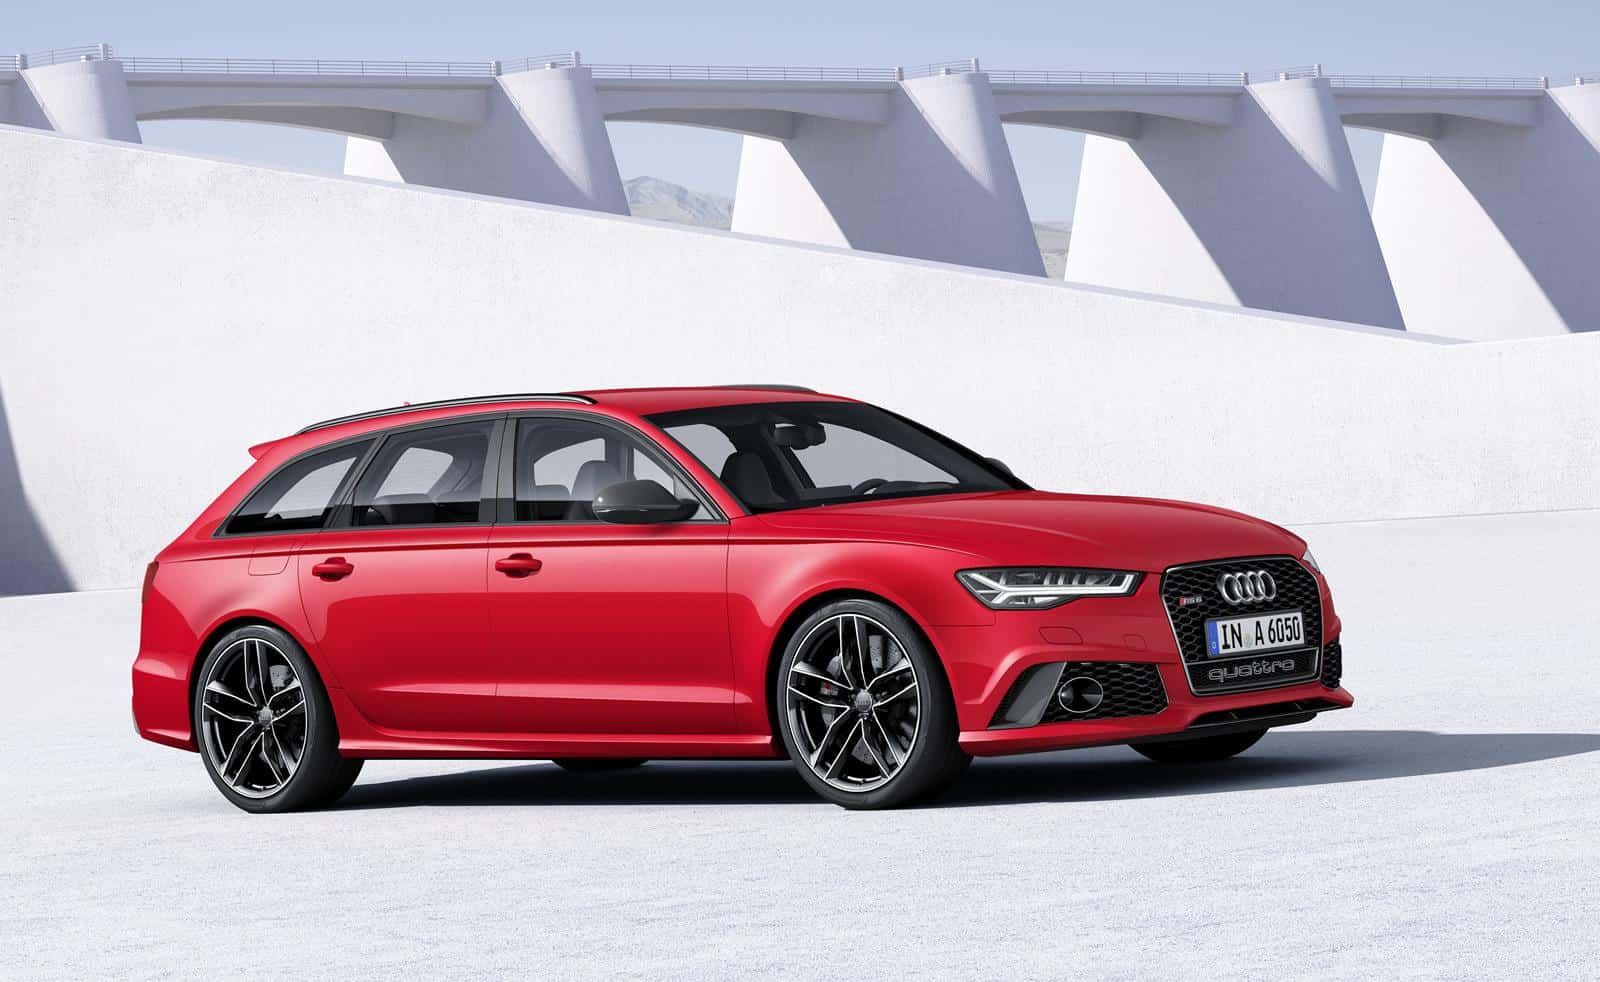 2015 Audi RS6 Avant Photos and Specifications | PrettyMotors.com